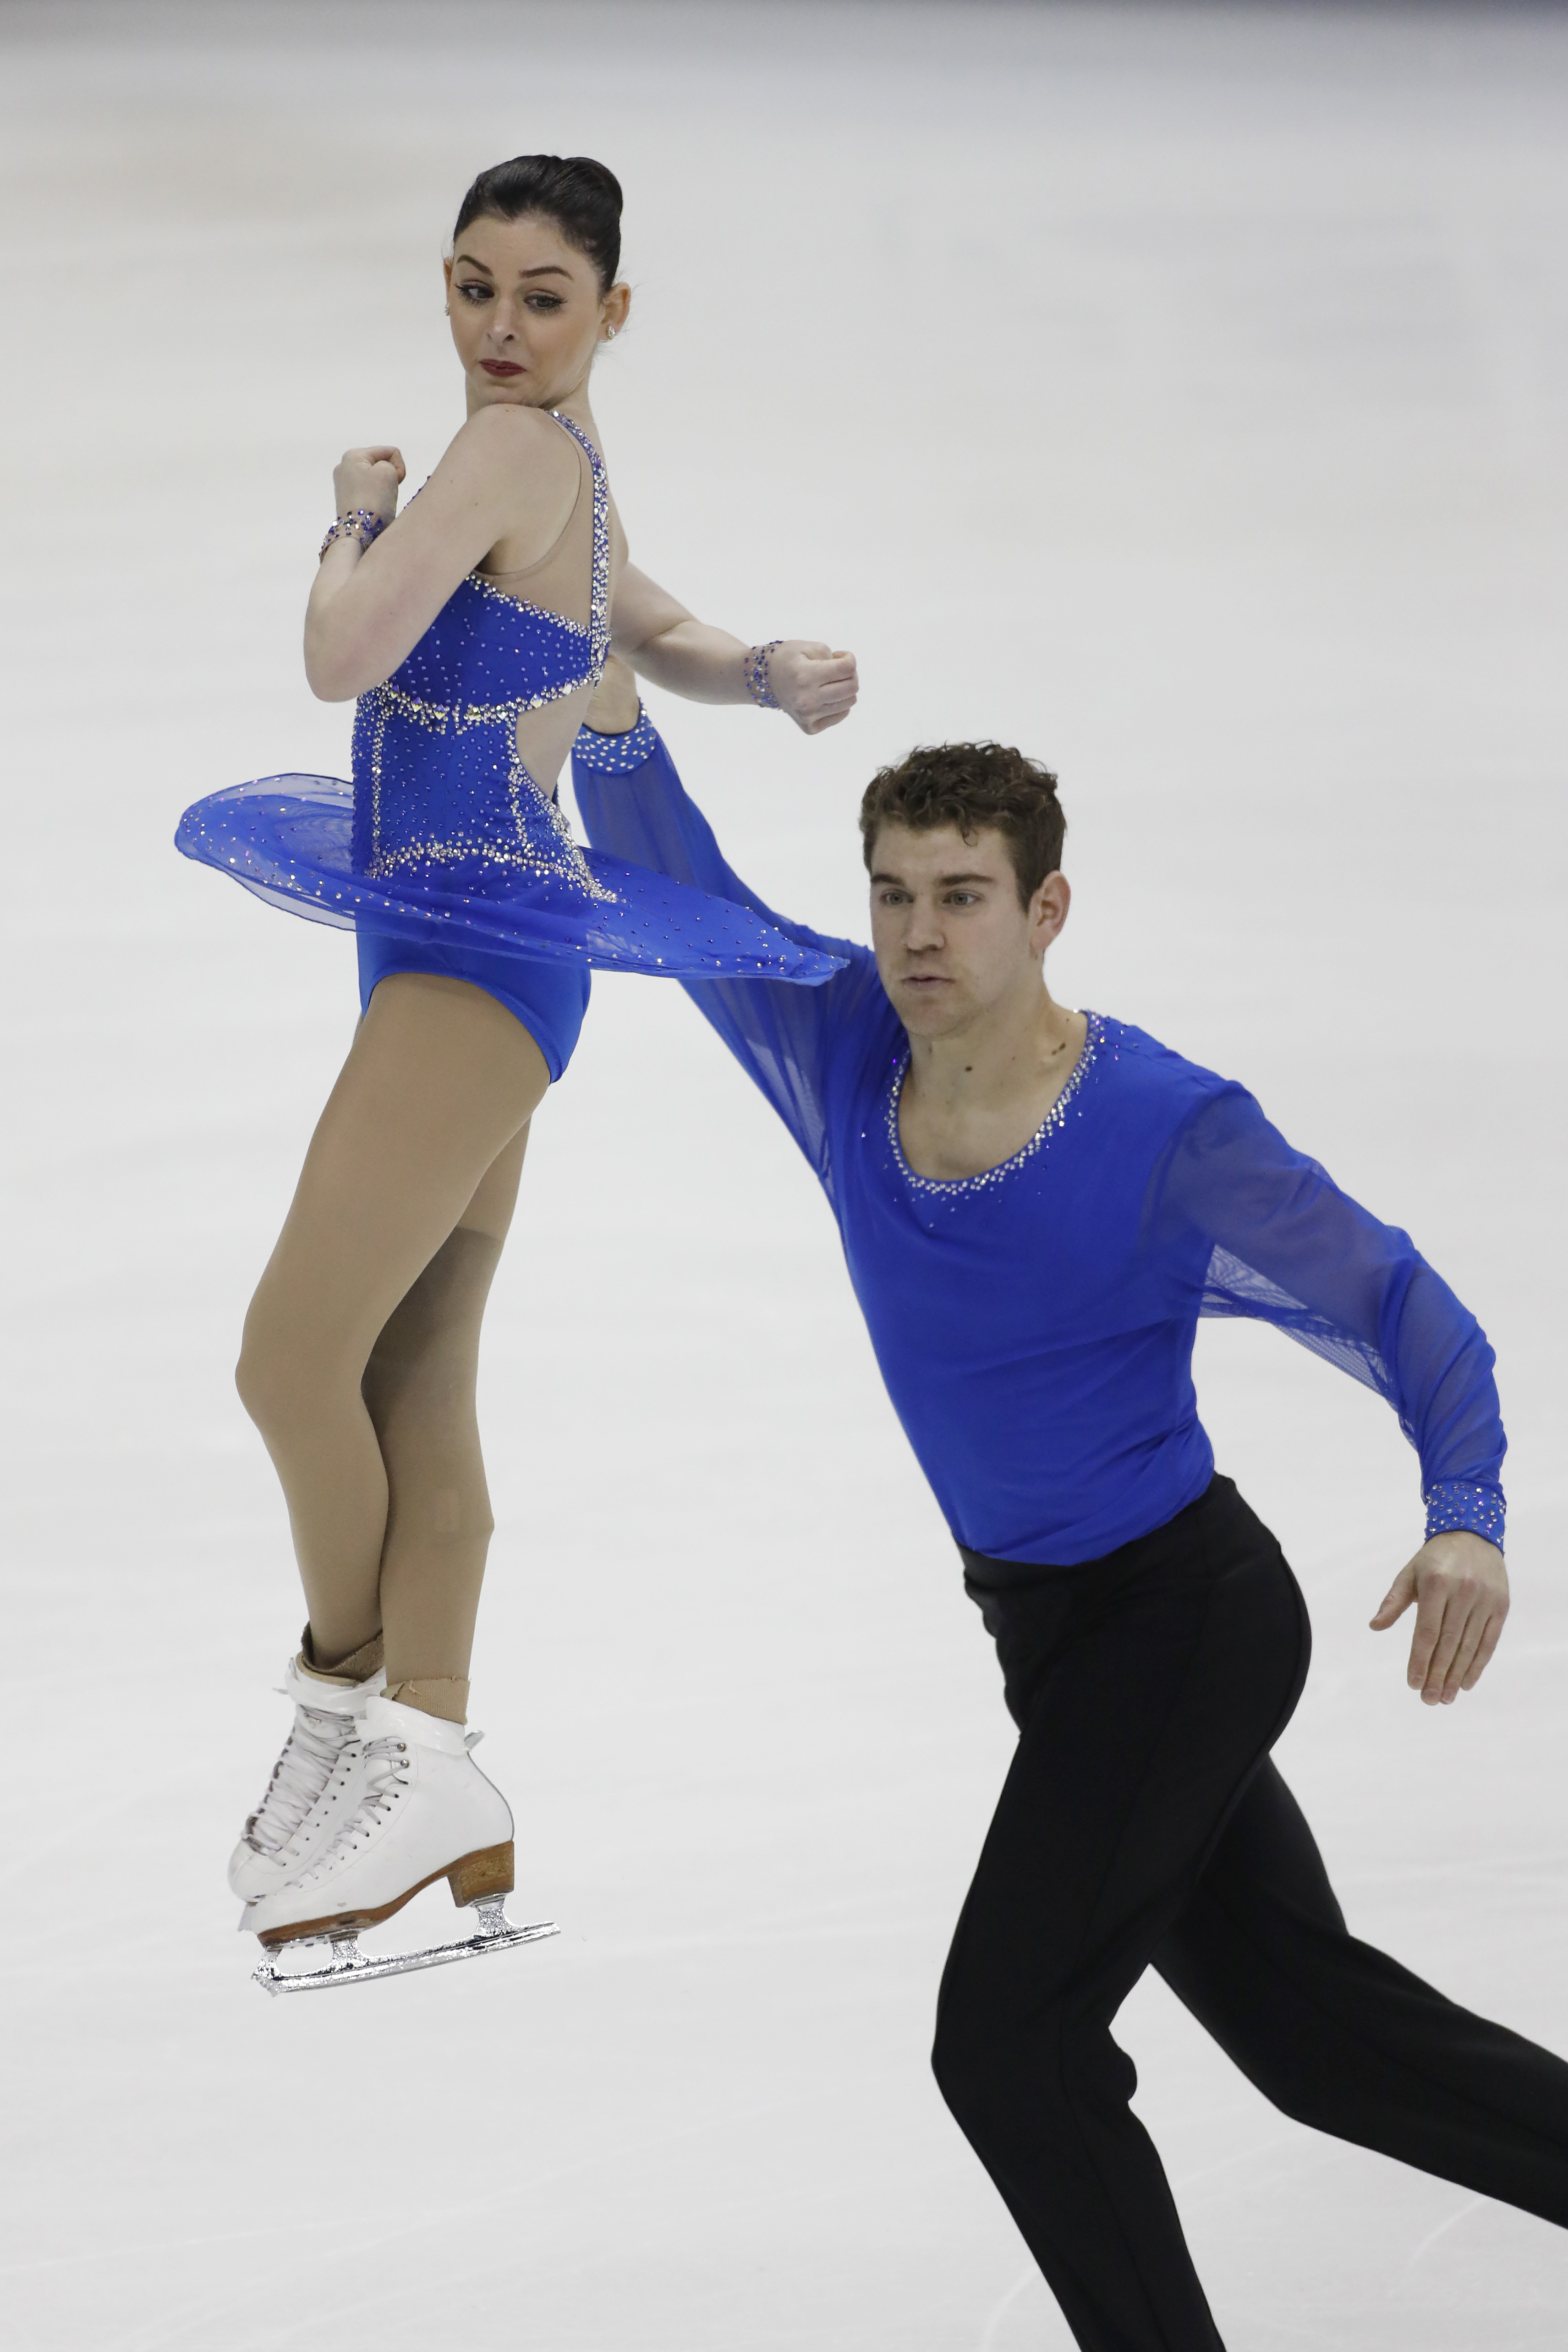 Haven Denney and Brandon Frazier perform during the pairs free skate competition at the U.S. Figure Skating Championships Saturday, Jan. 21, 2017, in Kansas City, Mo. (AP Photo/Colin E. Braley)